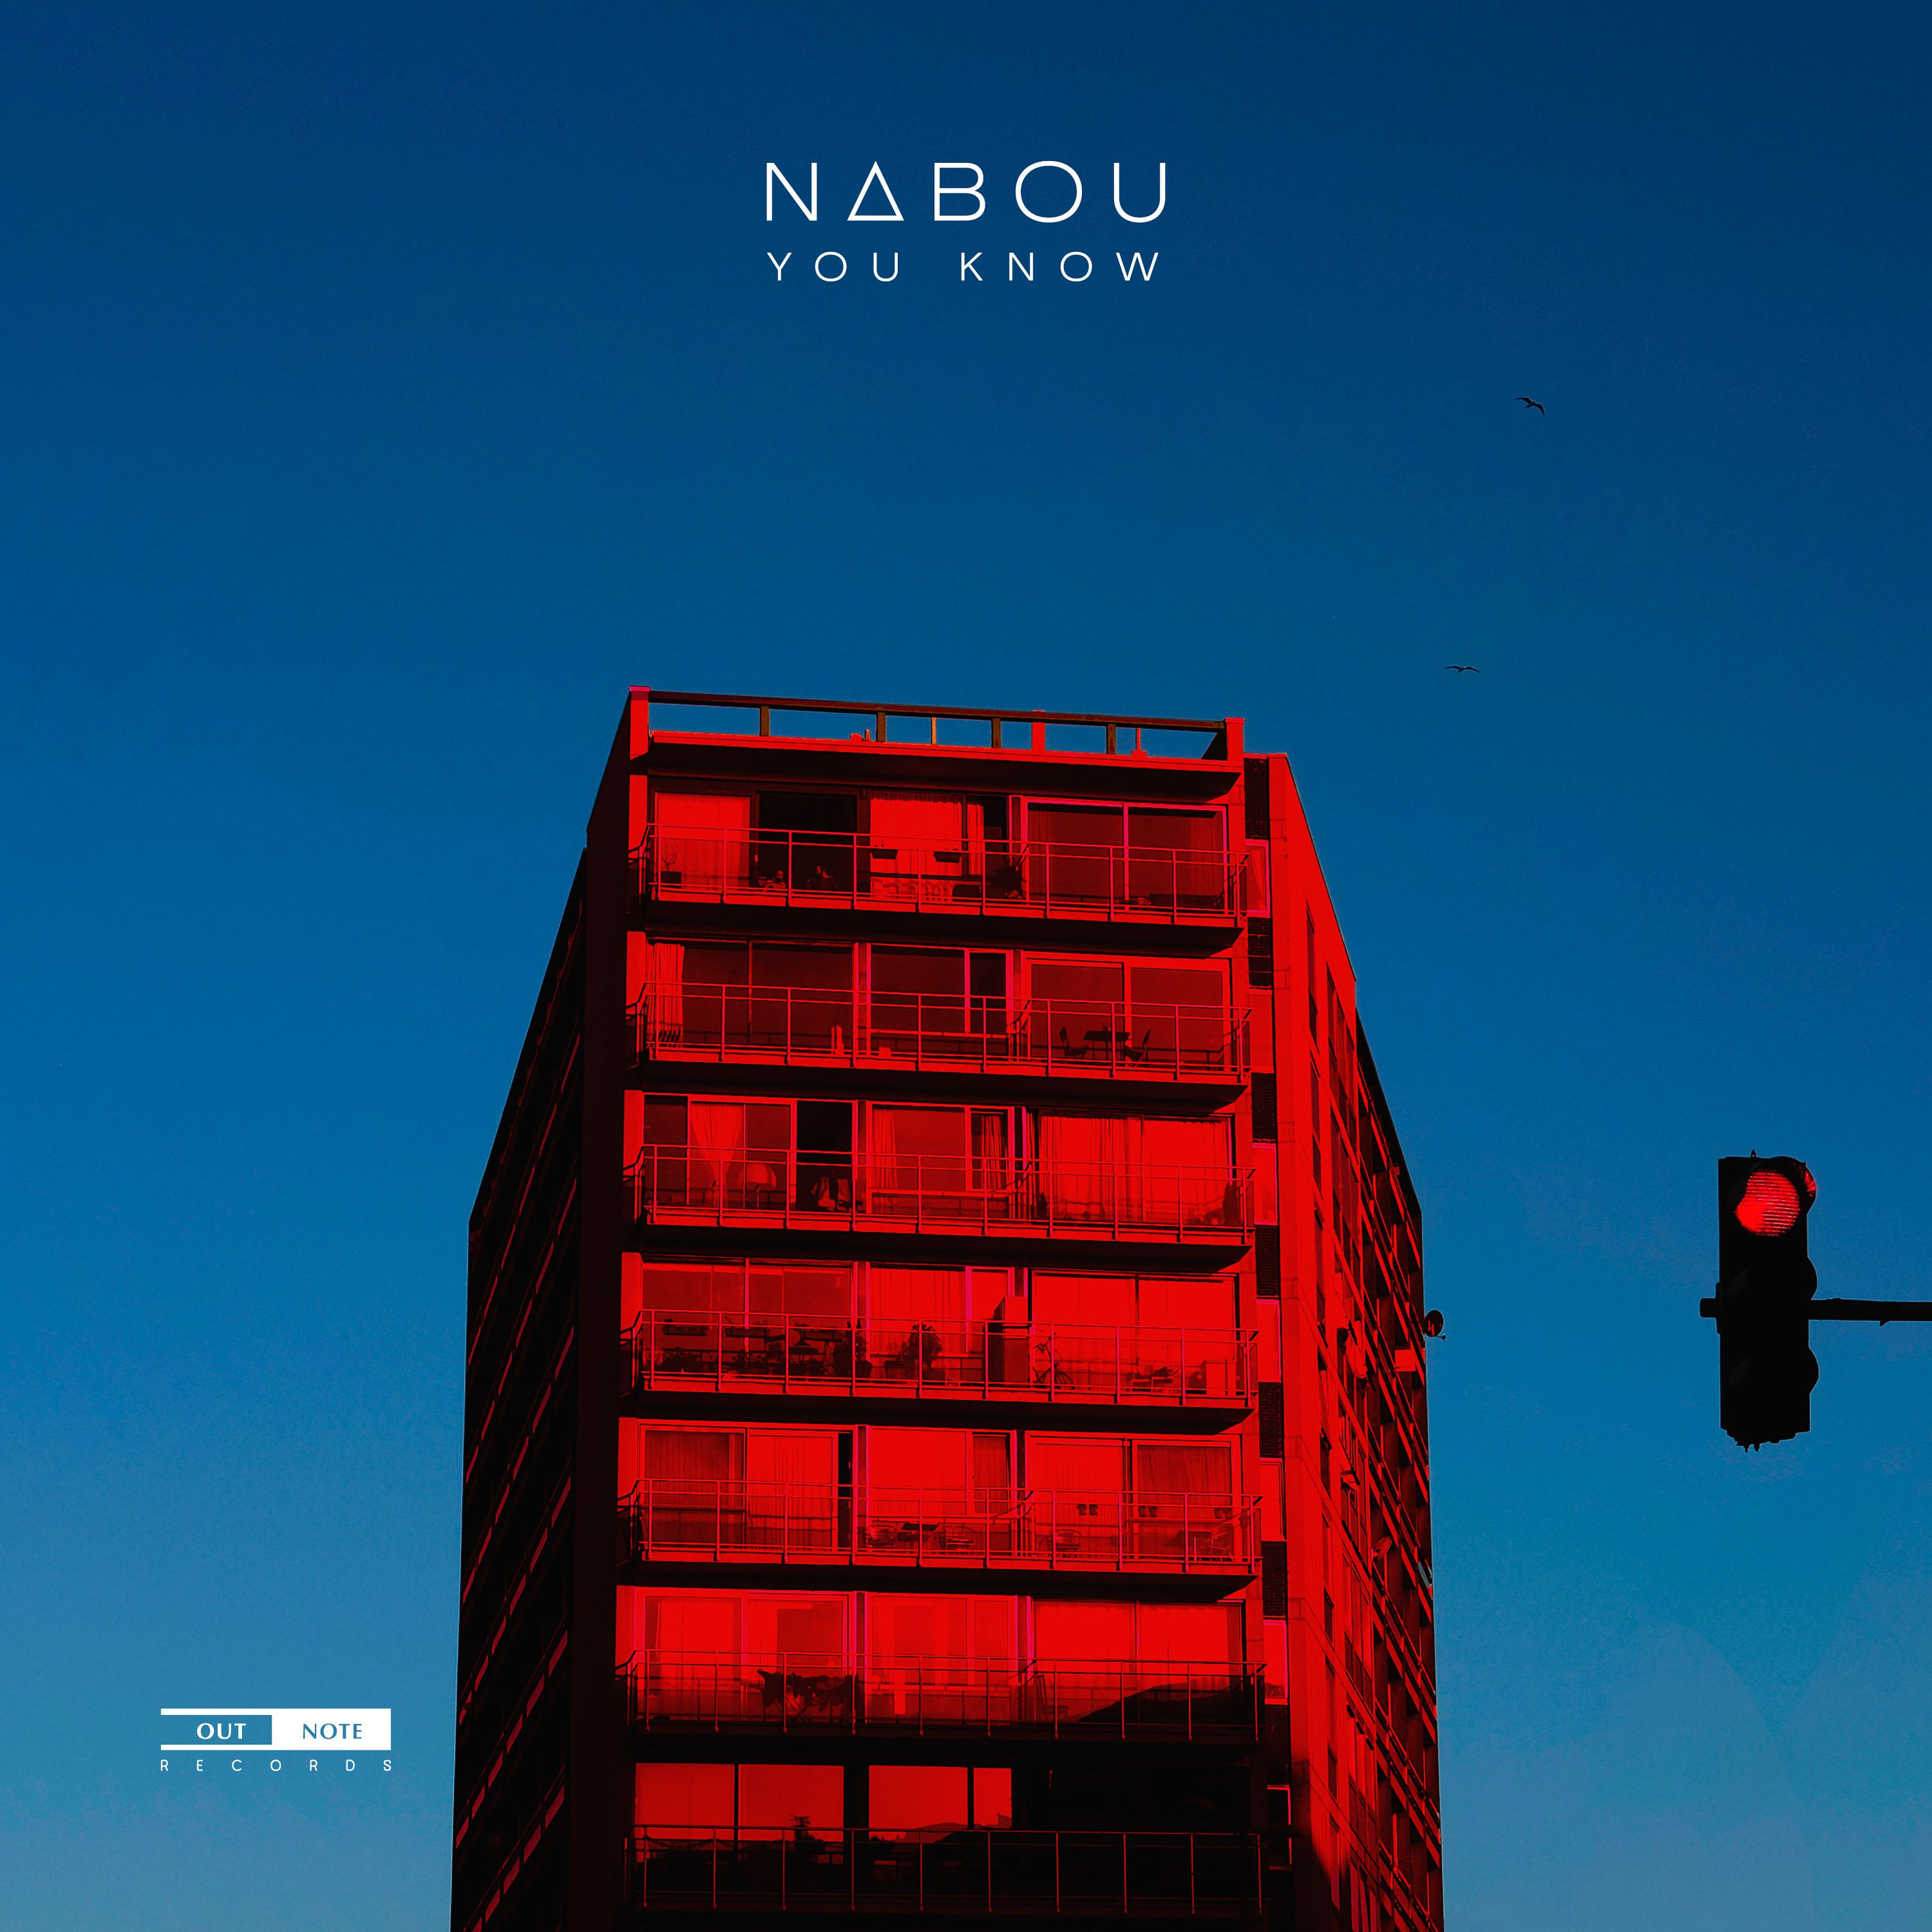 You Know - Nabou